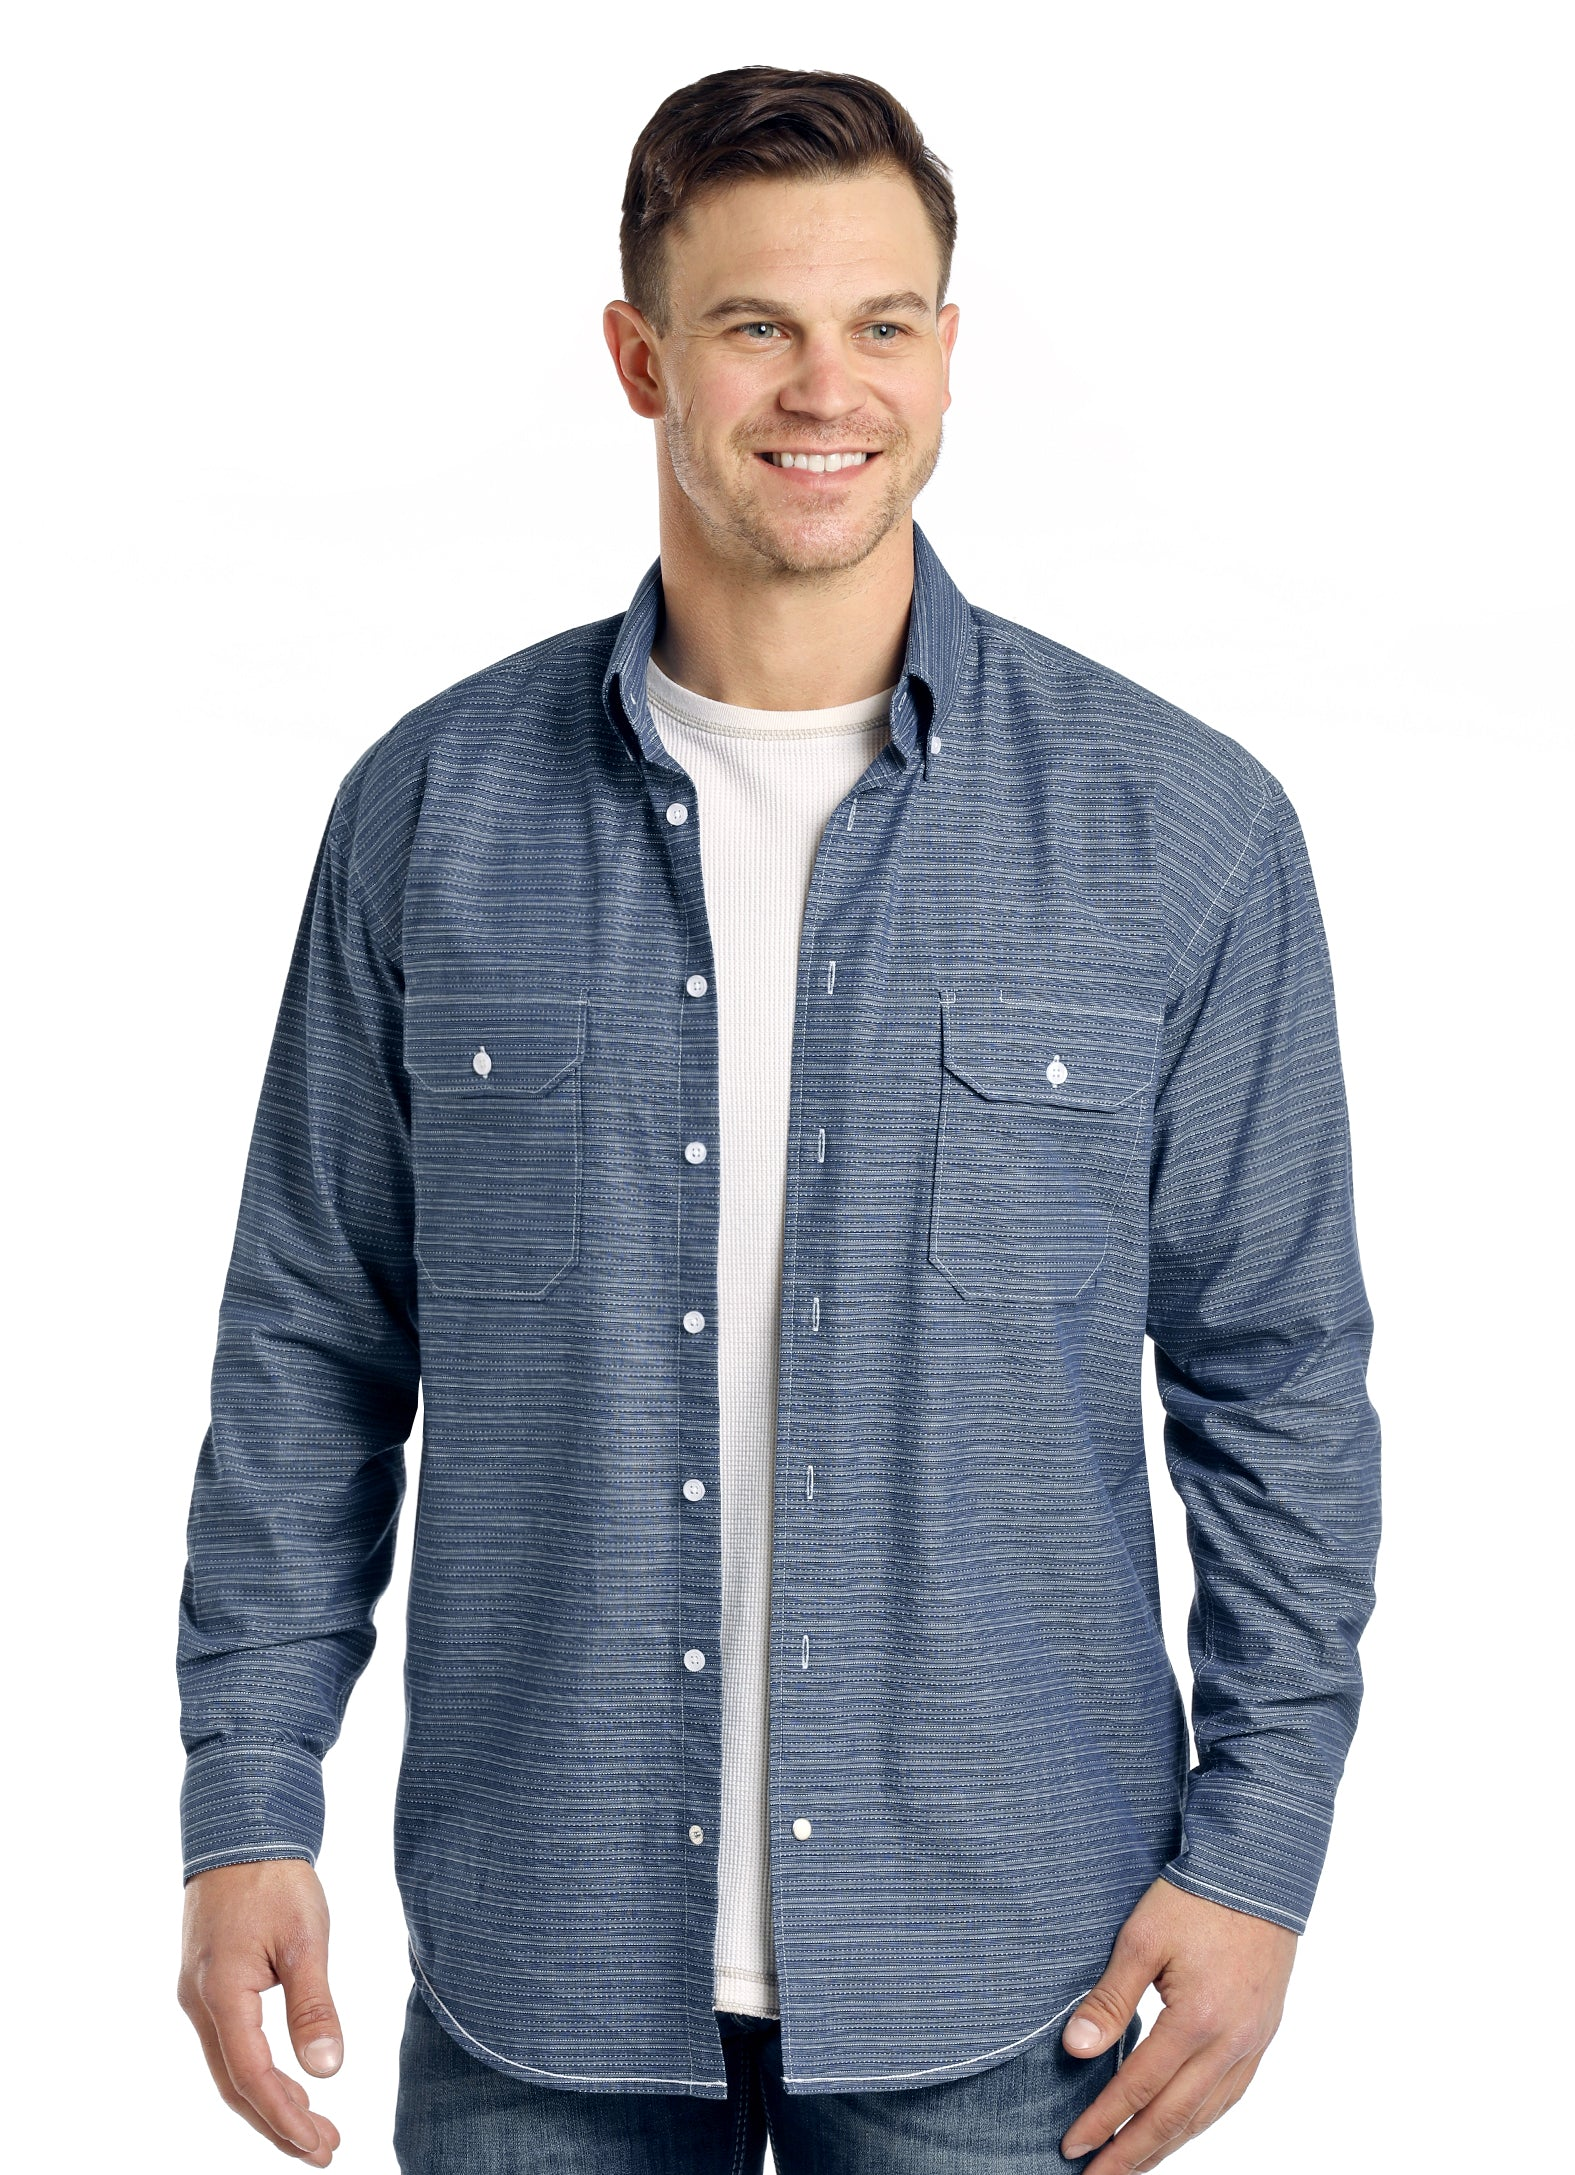 Panhandle Navy Blue and White Long Sleeve Button Down Shirt